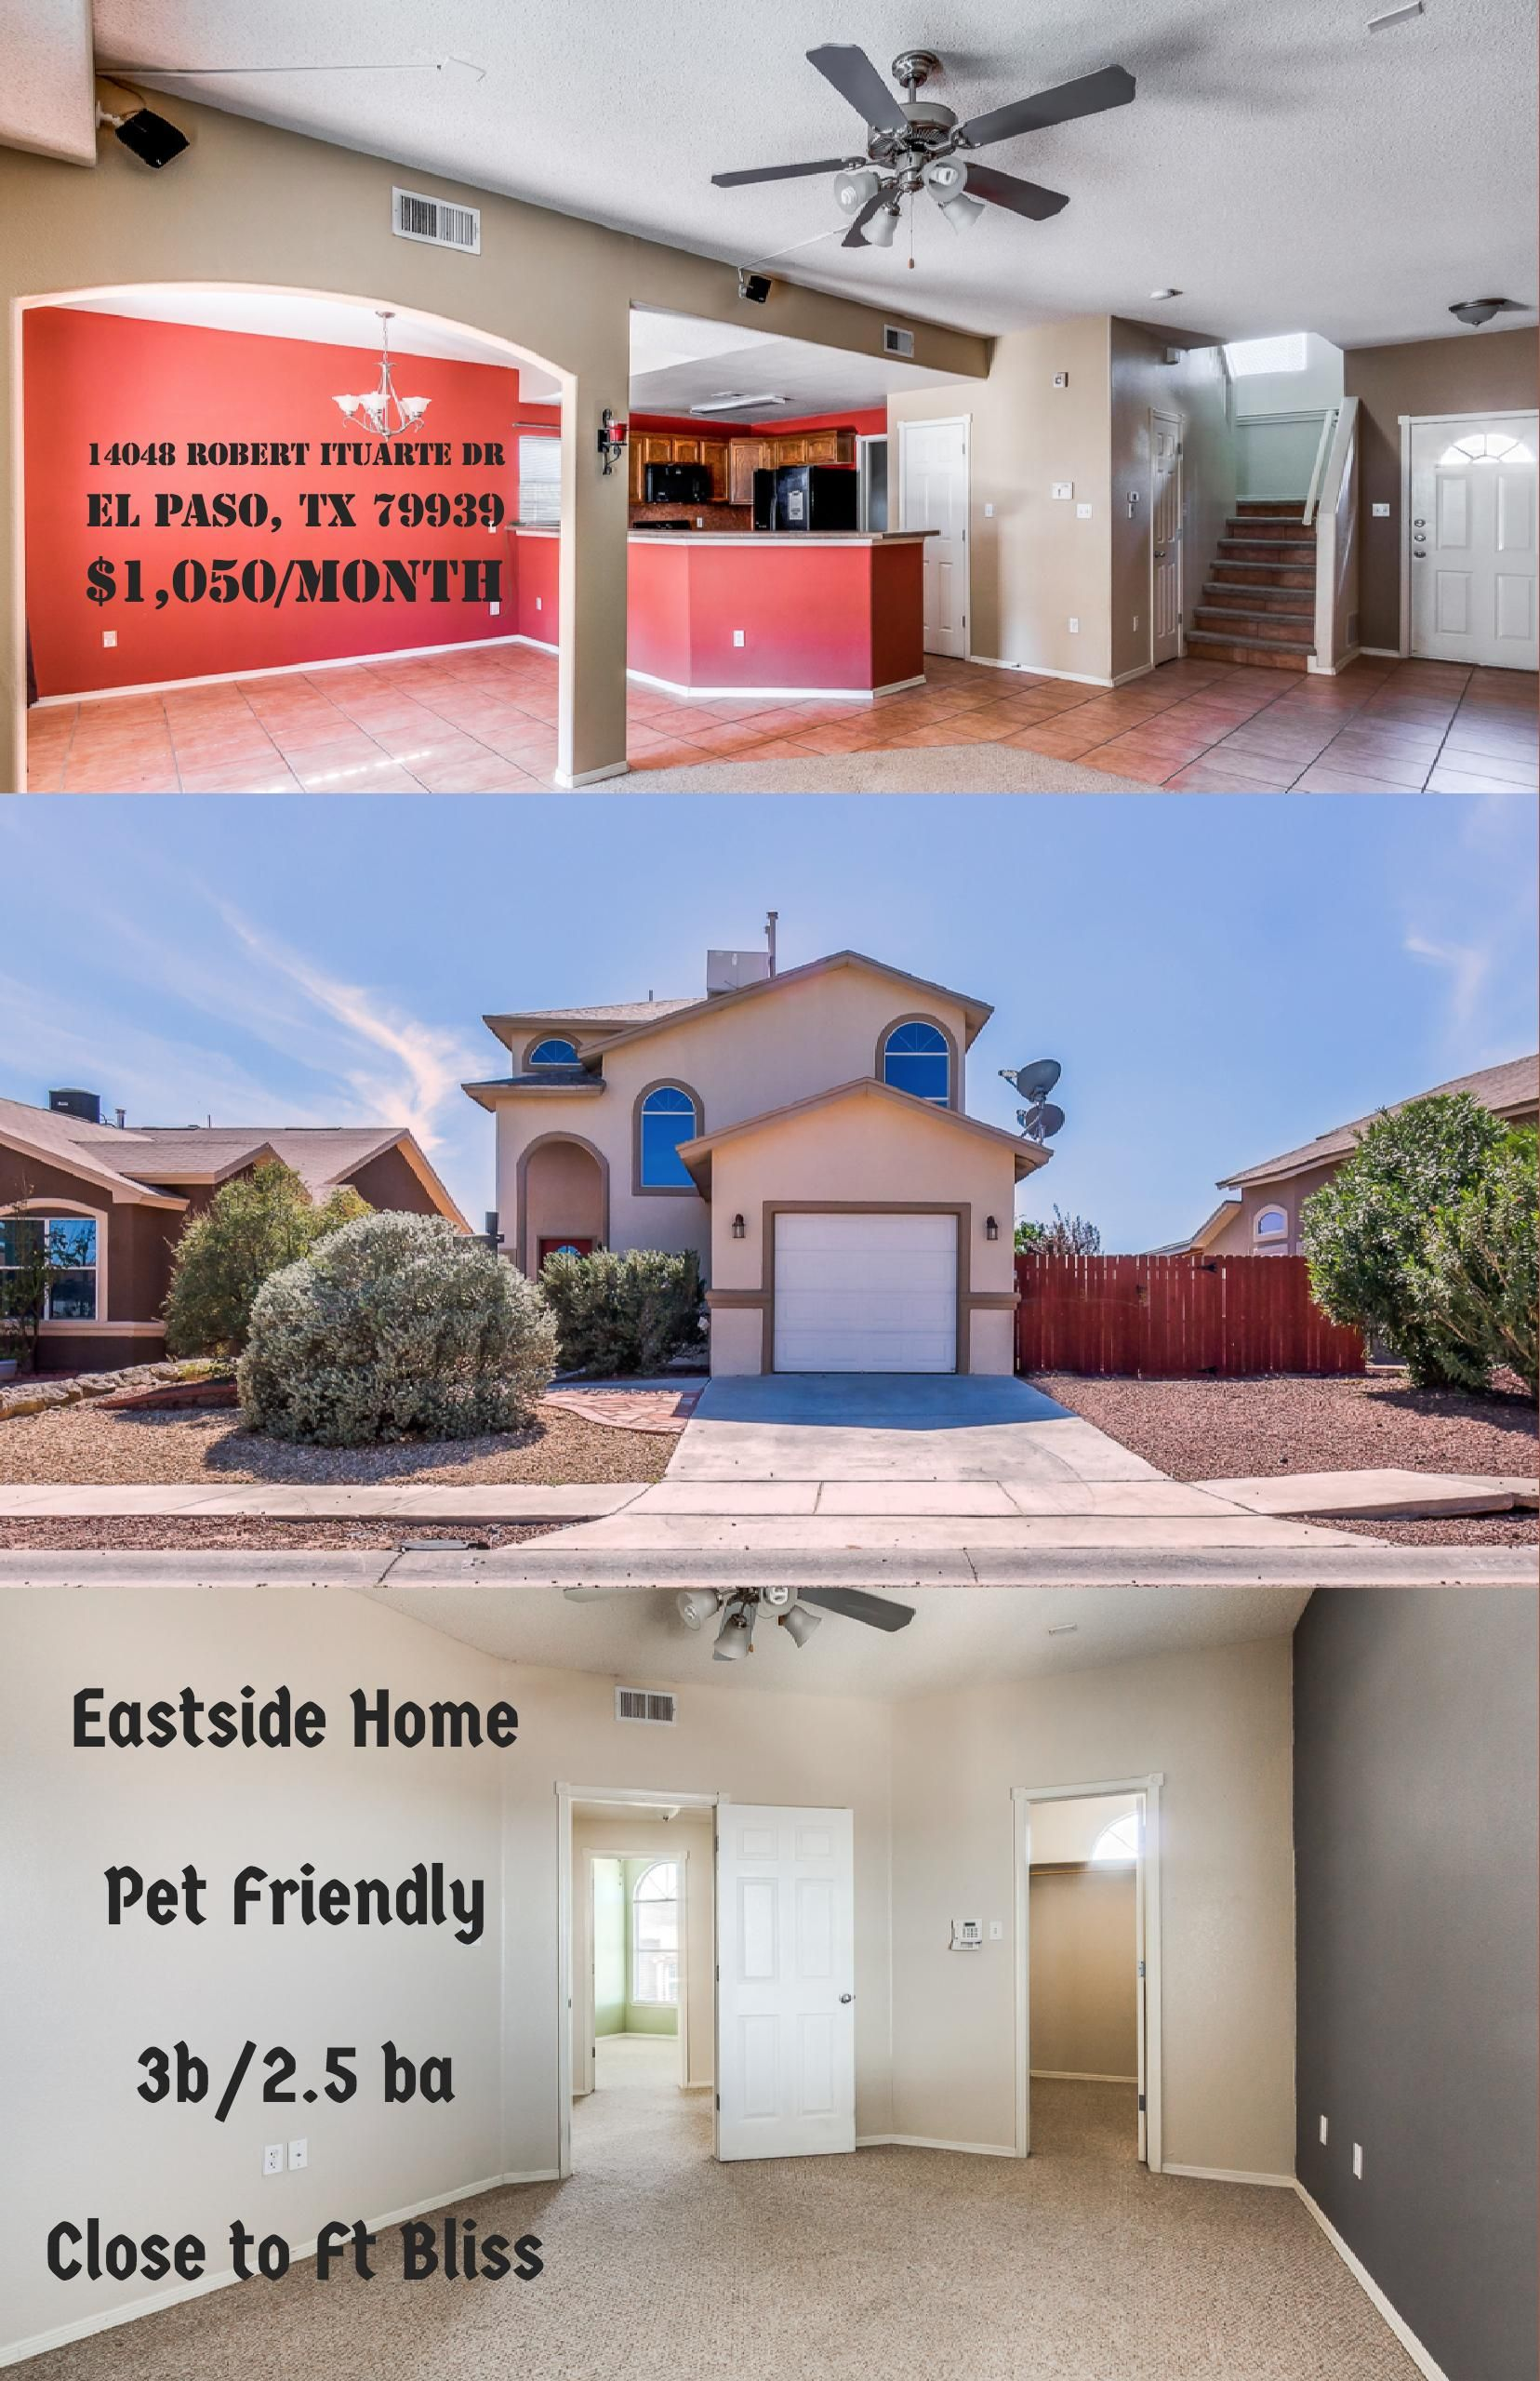 Eastside Home Close To Ft Bliss For Rent Elpaso Elpasotx Itsallgoodelpaso Eastelpaso Fortbliss Home4rent Fort Bliss Housing Renting A House House Rental